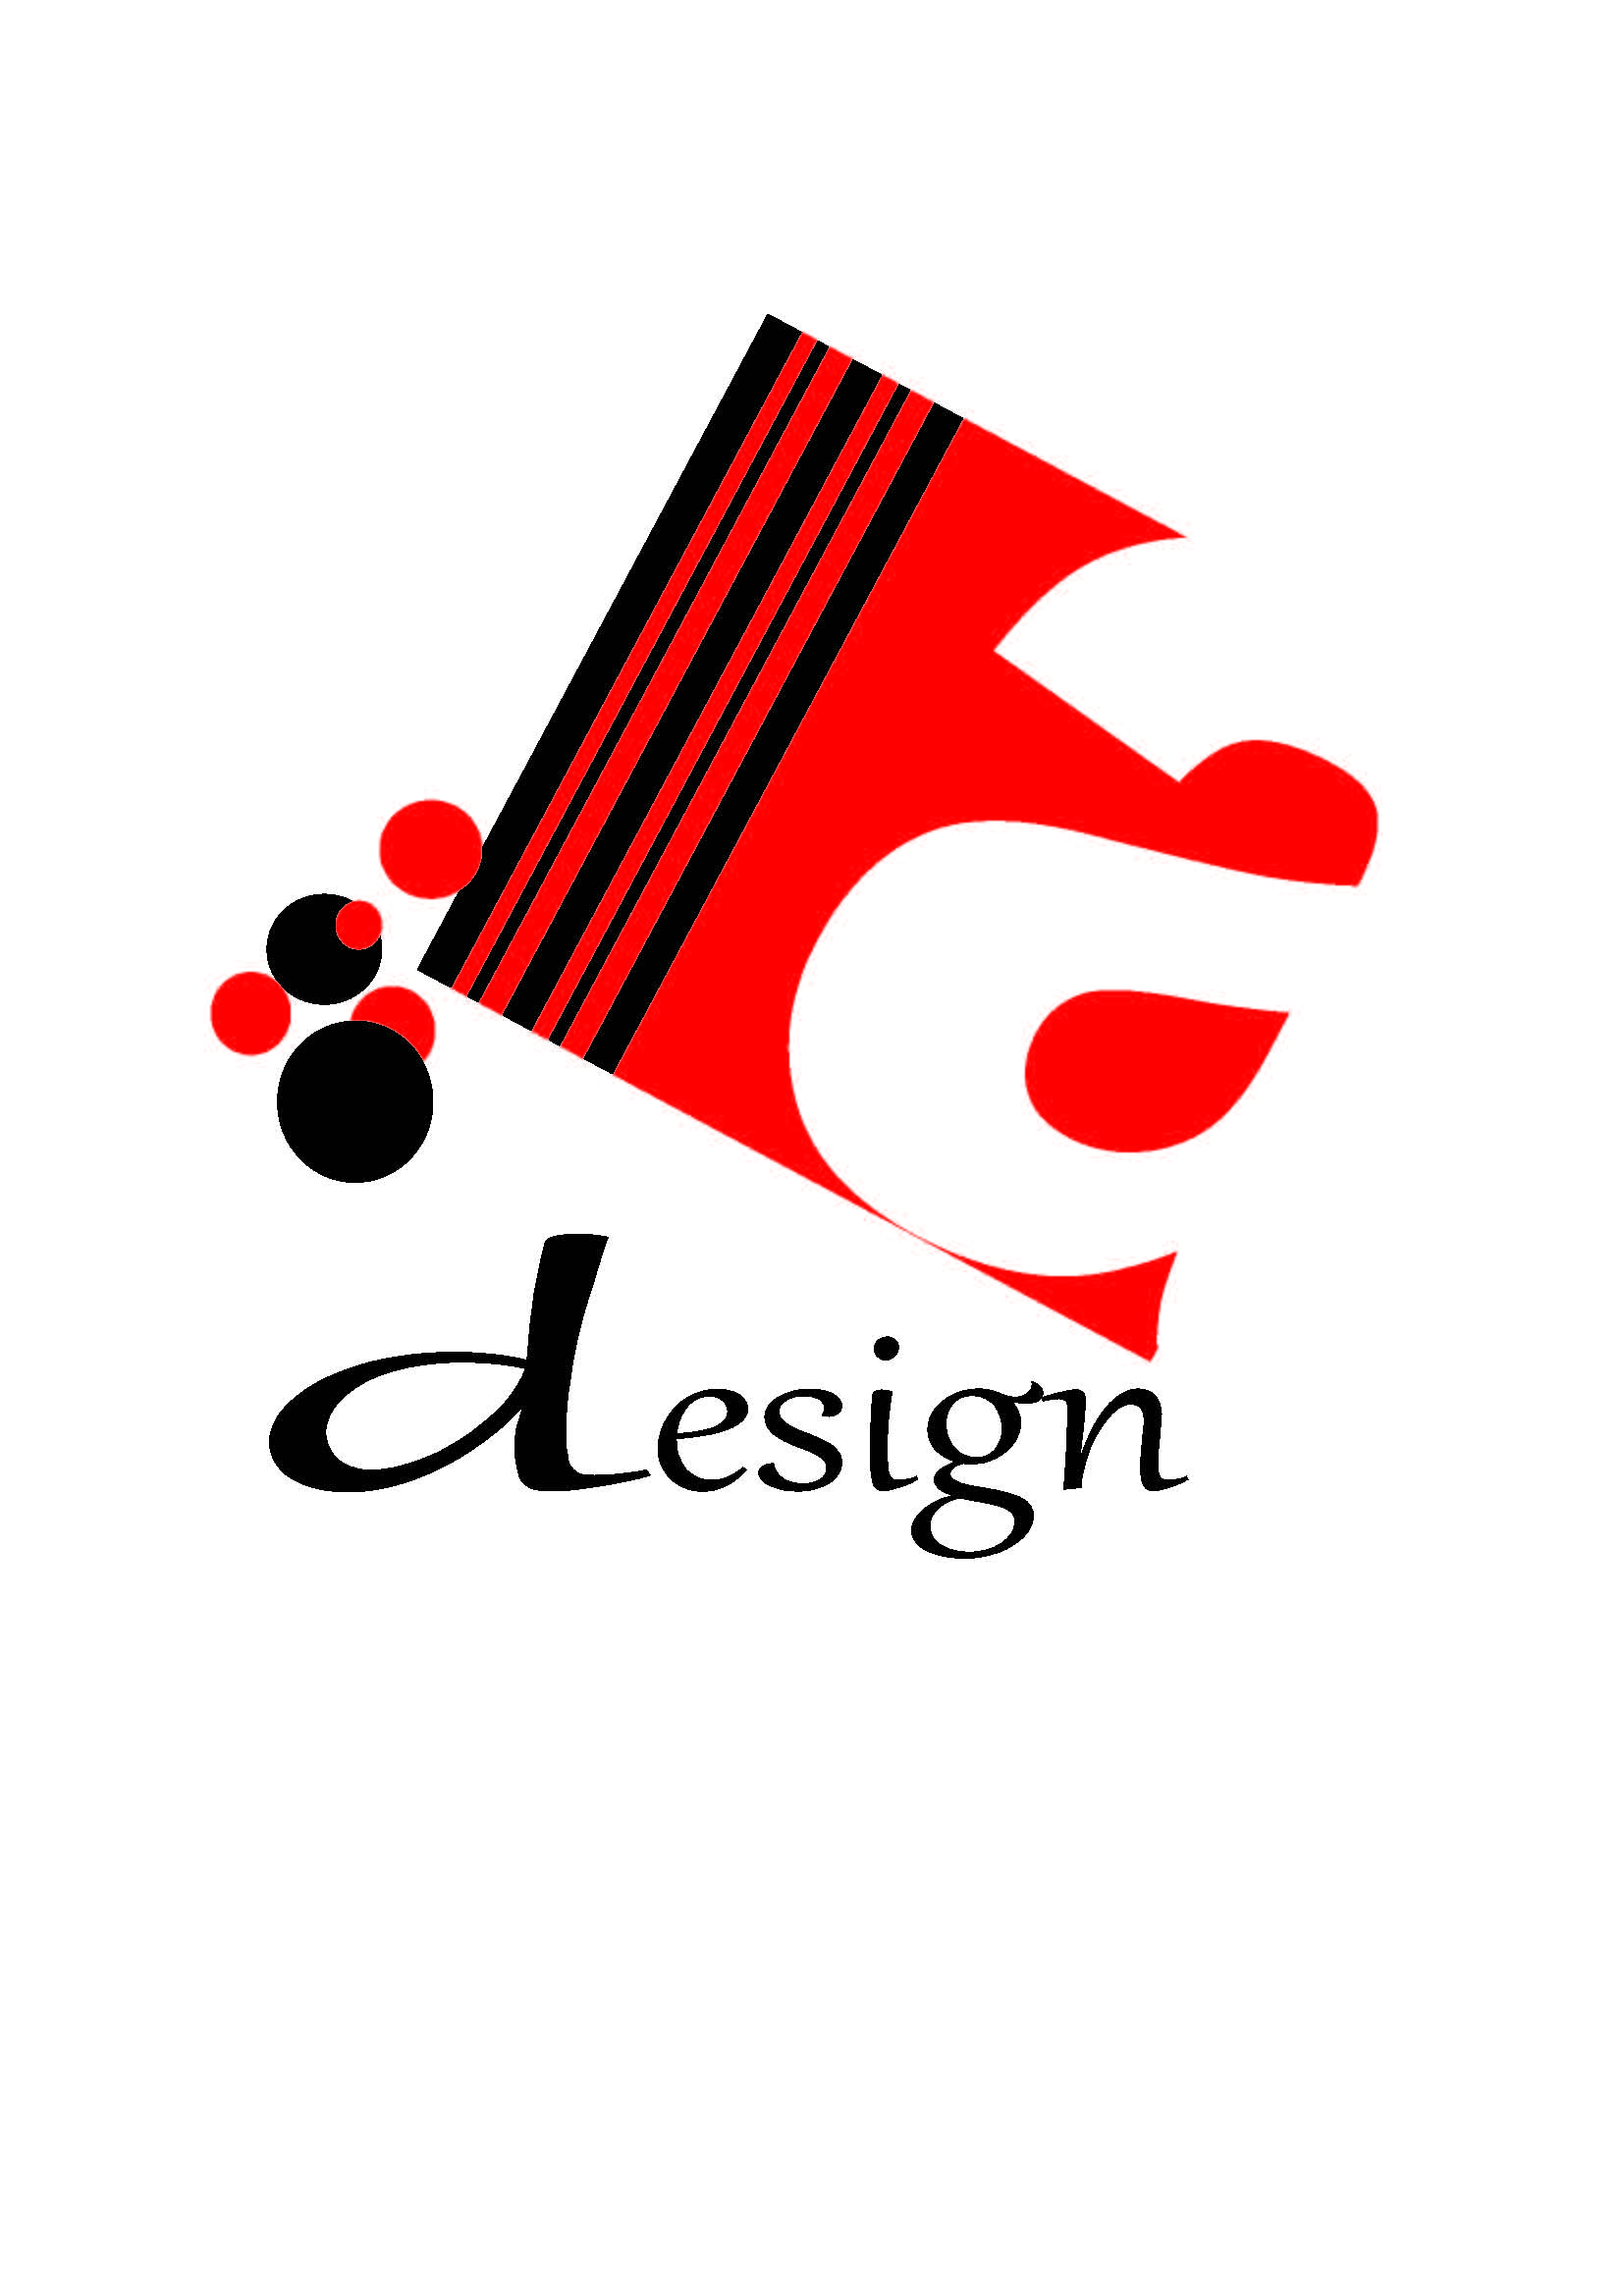 17 company logos design graphic images graphic design for Design company